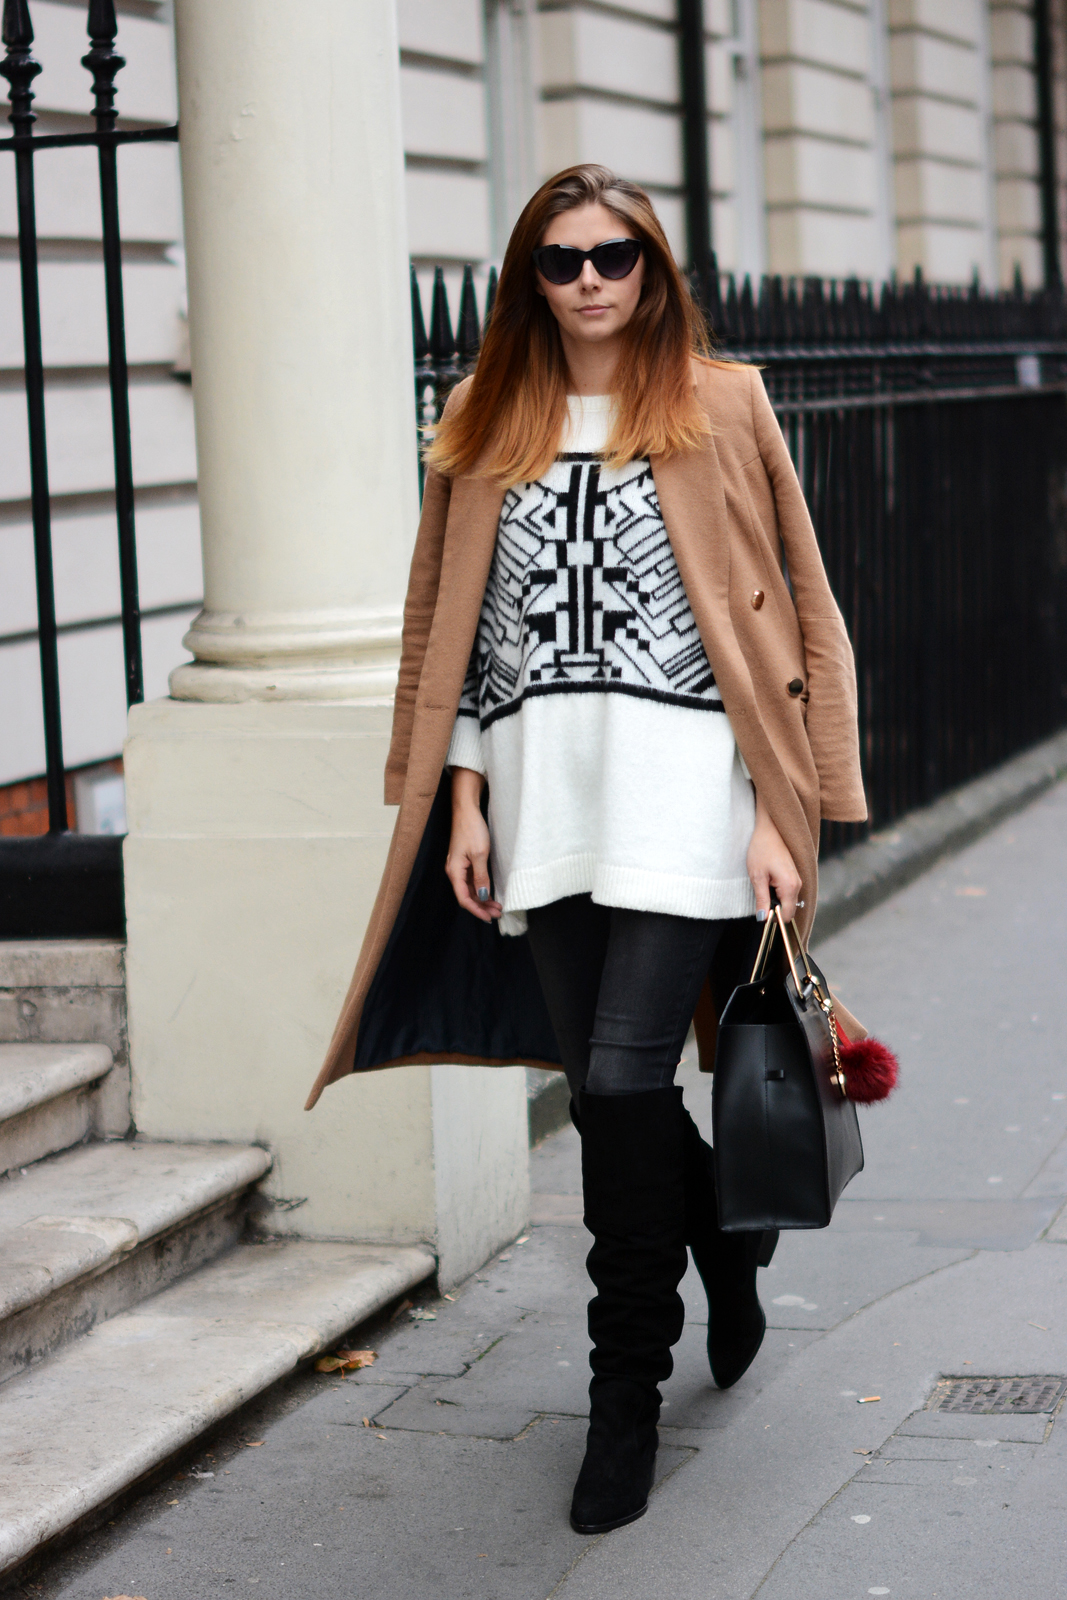 EJSTYLE - River Island double breated camel coat, aztec sweater, Black suede OTK boots, ASOS metal handle bag, fall outfit